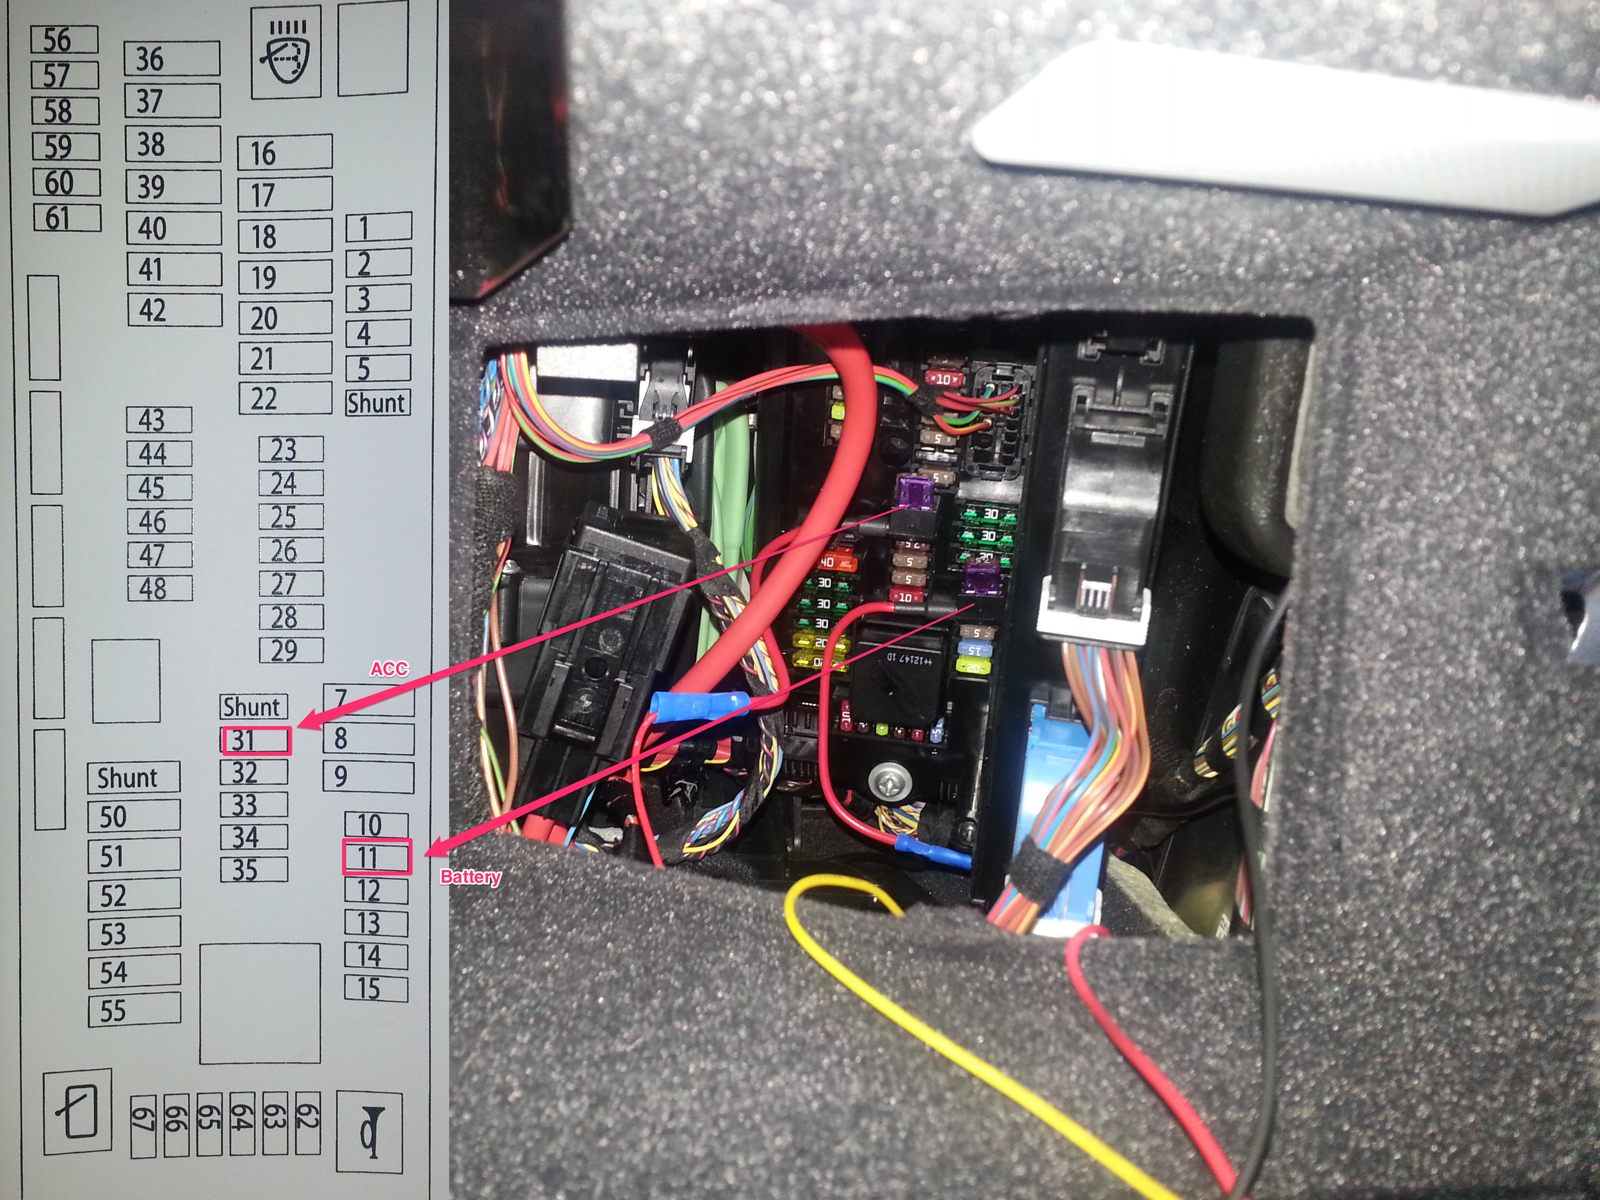 Bmw F10 Fuse Box Free Wiring Diagrams 2014 M6 Installed A Blackvue Camera System Today Page 2